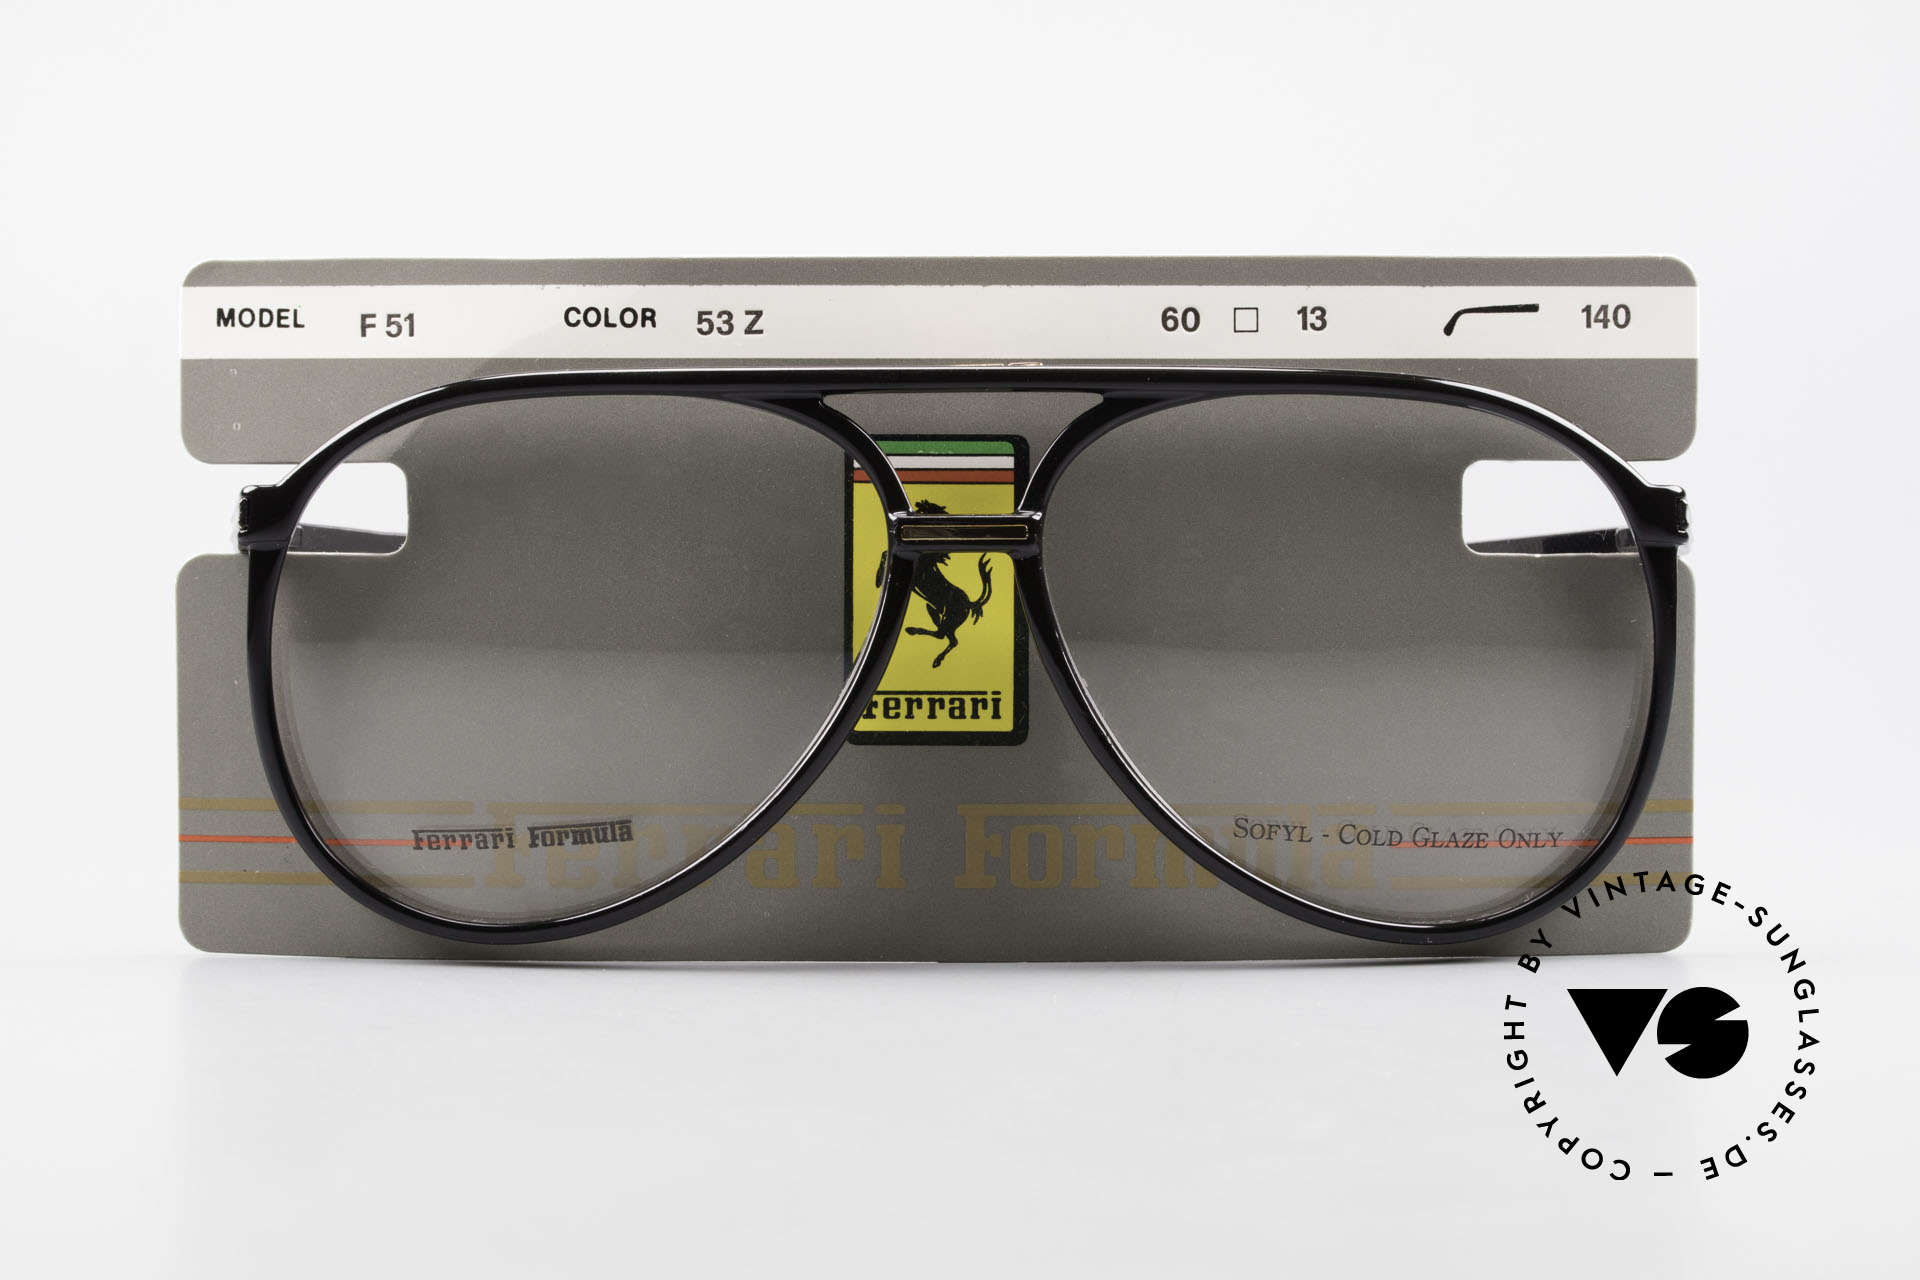 Ferrari F51 90's Formula 1 Racing Glasses, Size: large, Made for Men